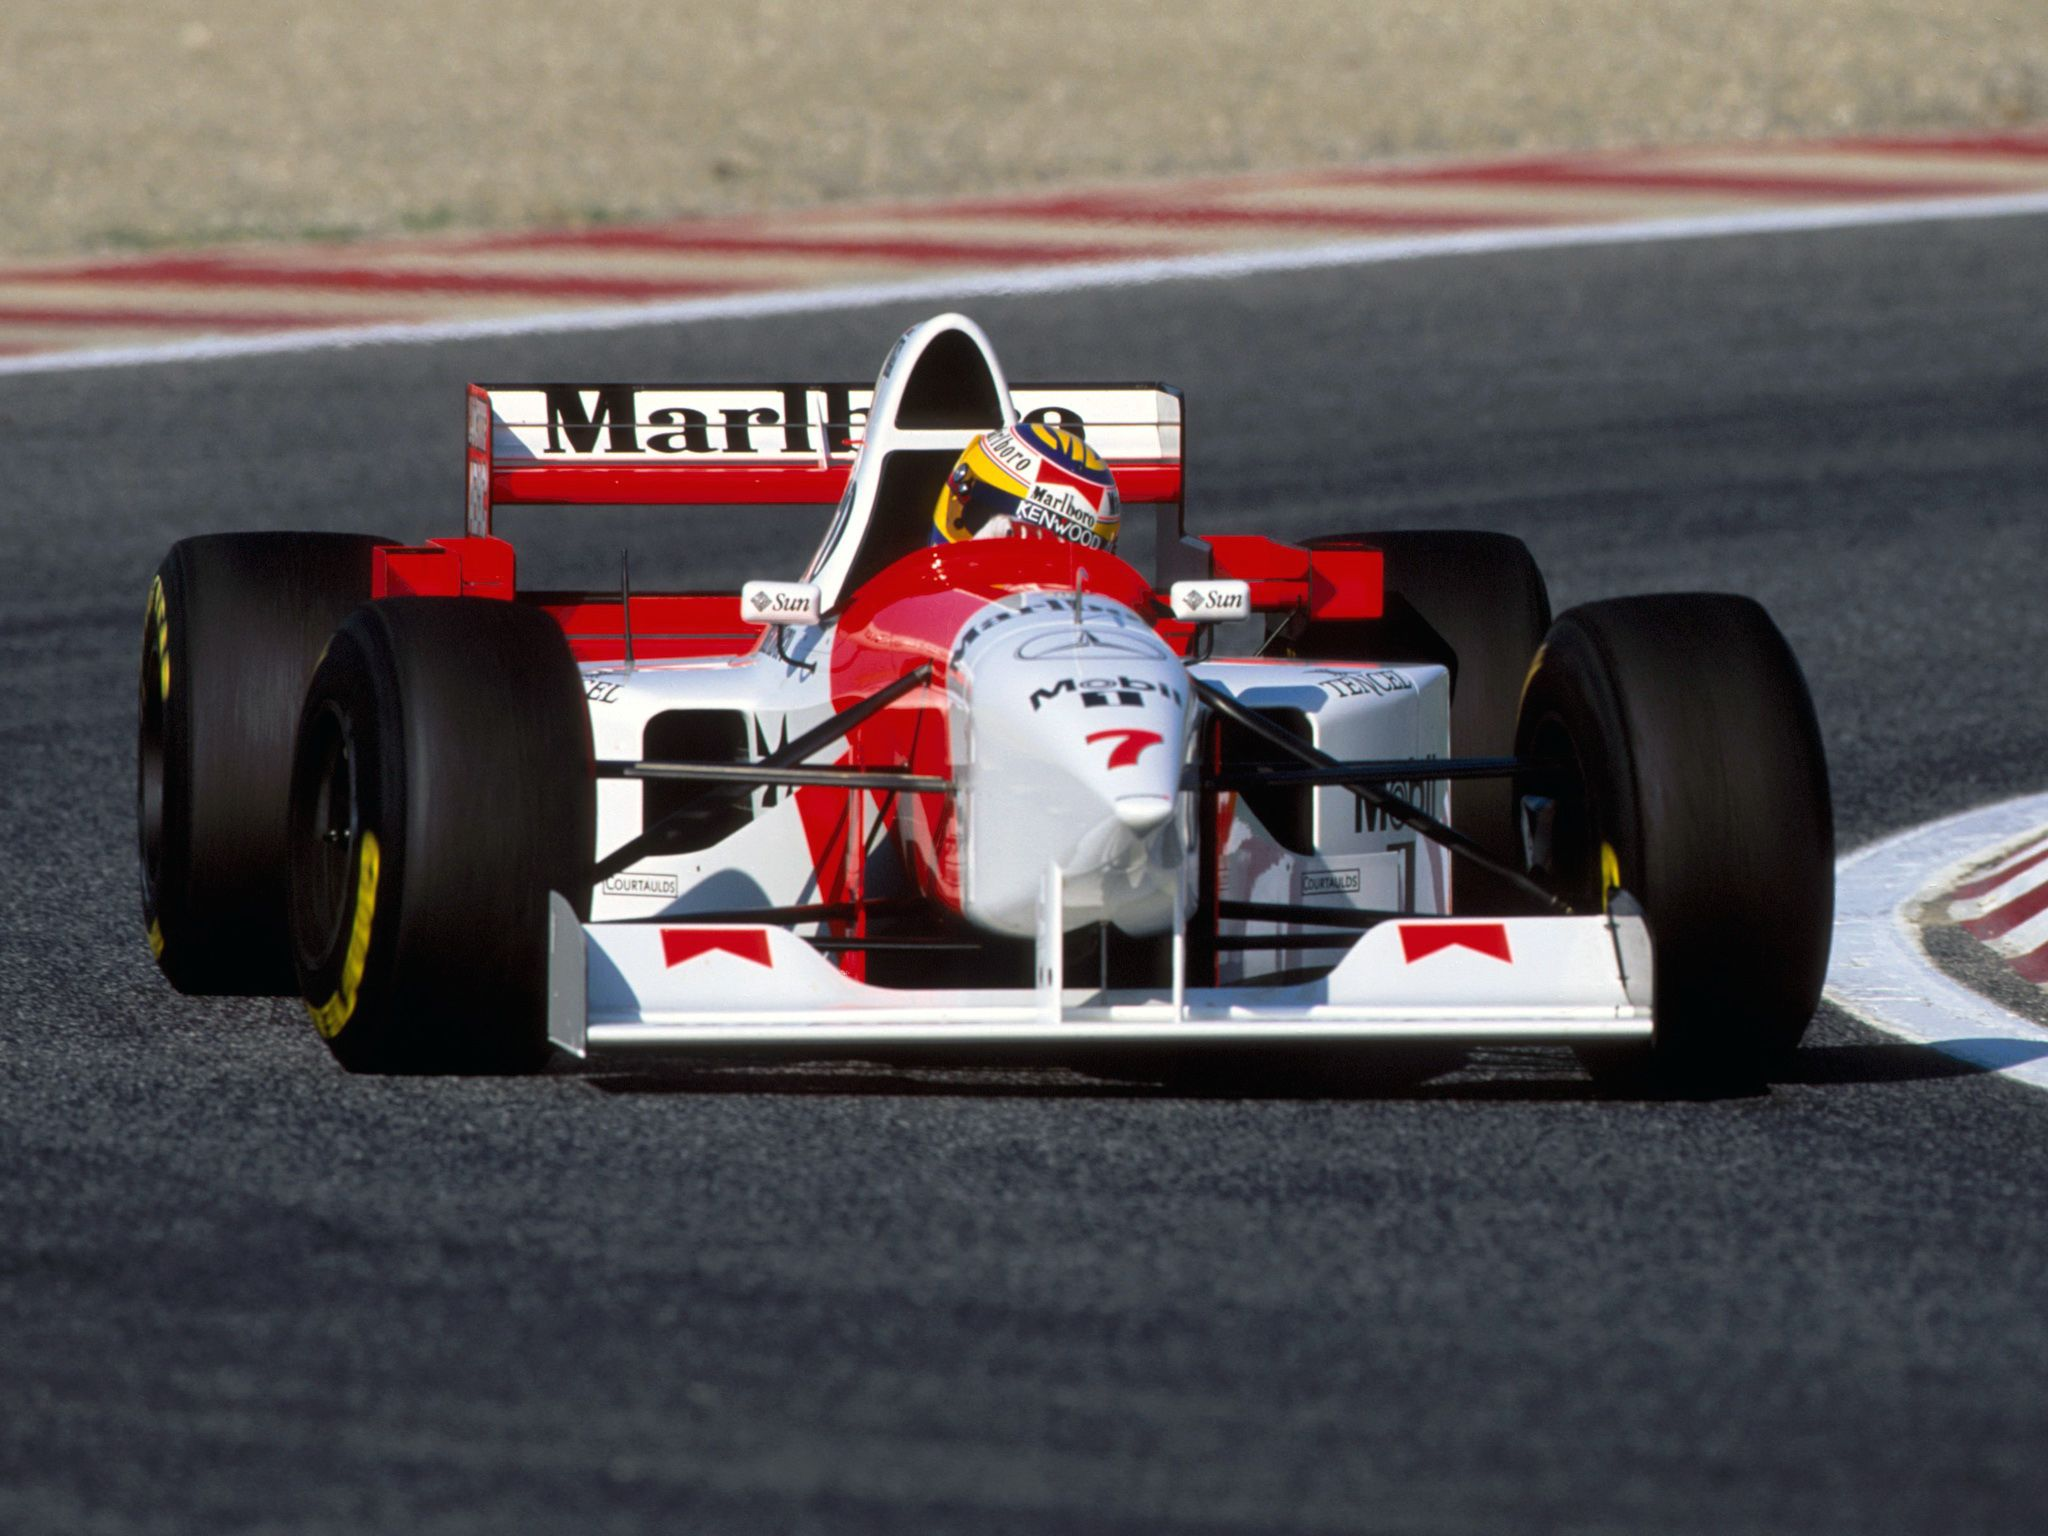 1995 mclaren mp410 mercedes mark blundell